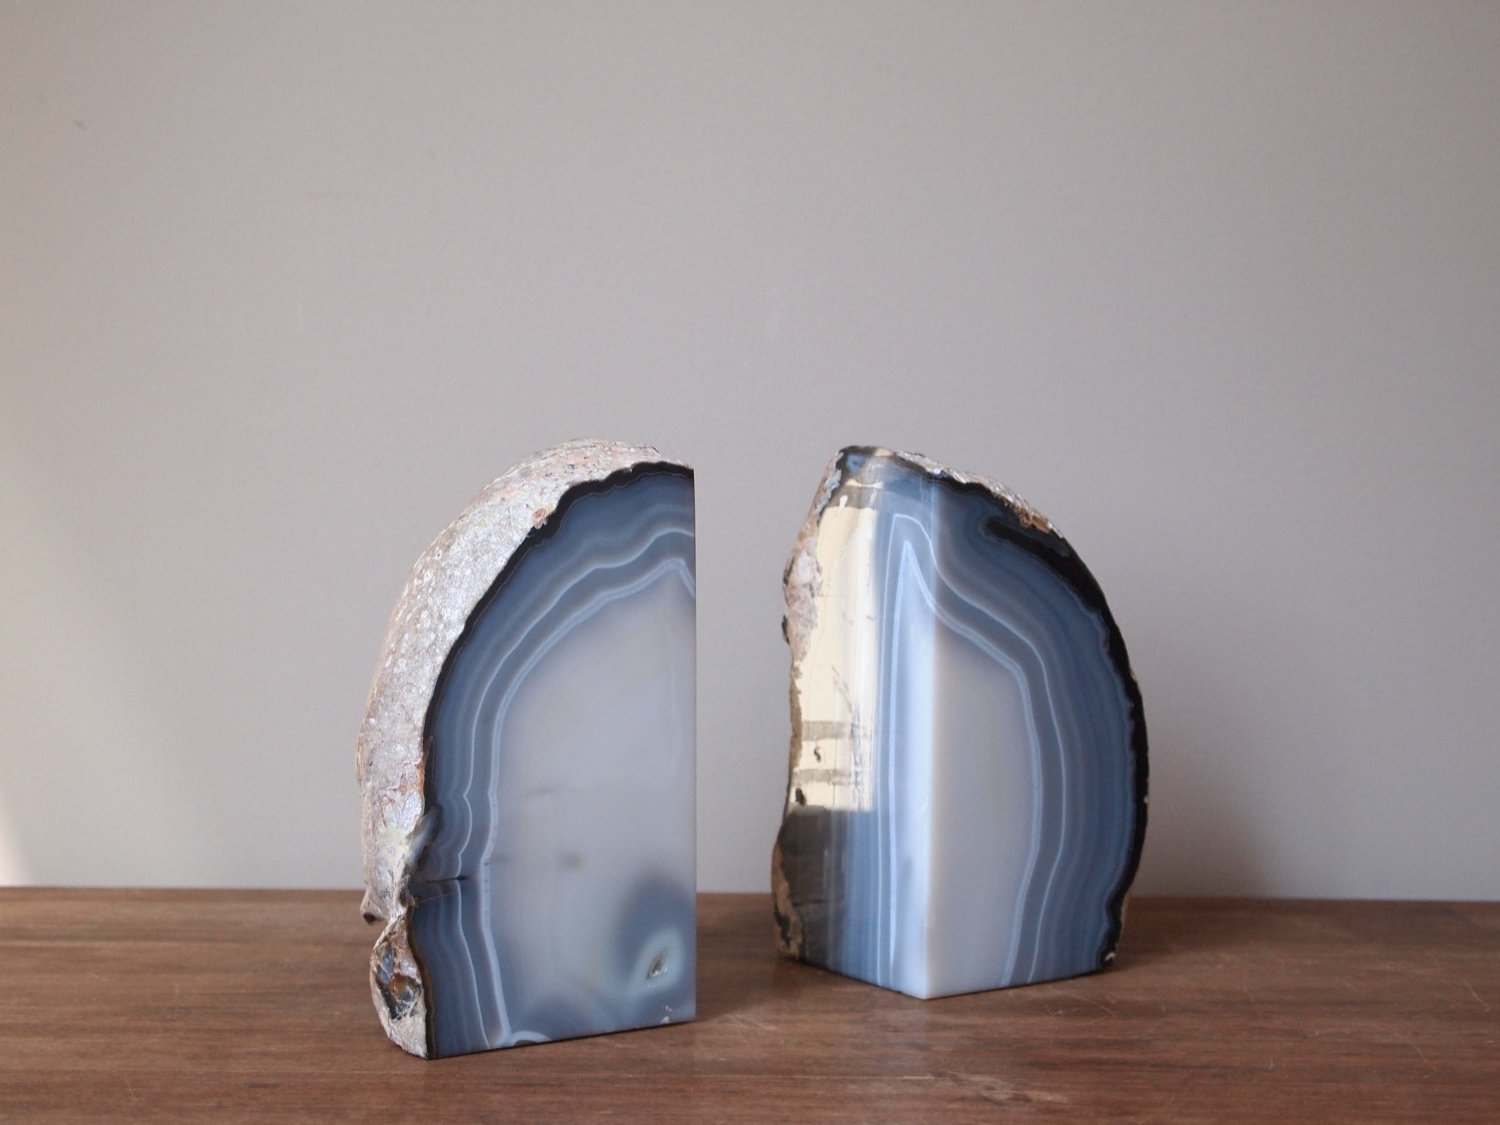 Lovely Rock Bookends | Splendiferous Geode Bookends